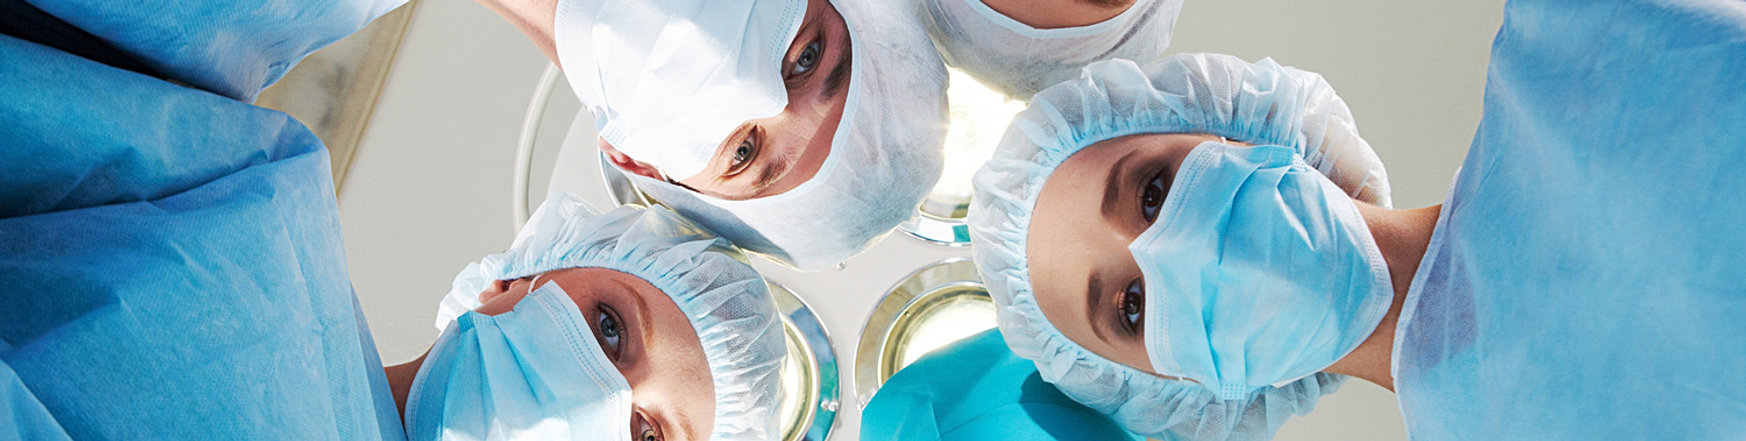 metrowest anesthesia join our team join our team metrowest anesthesia